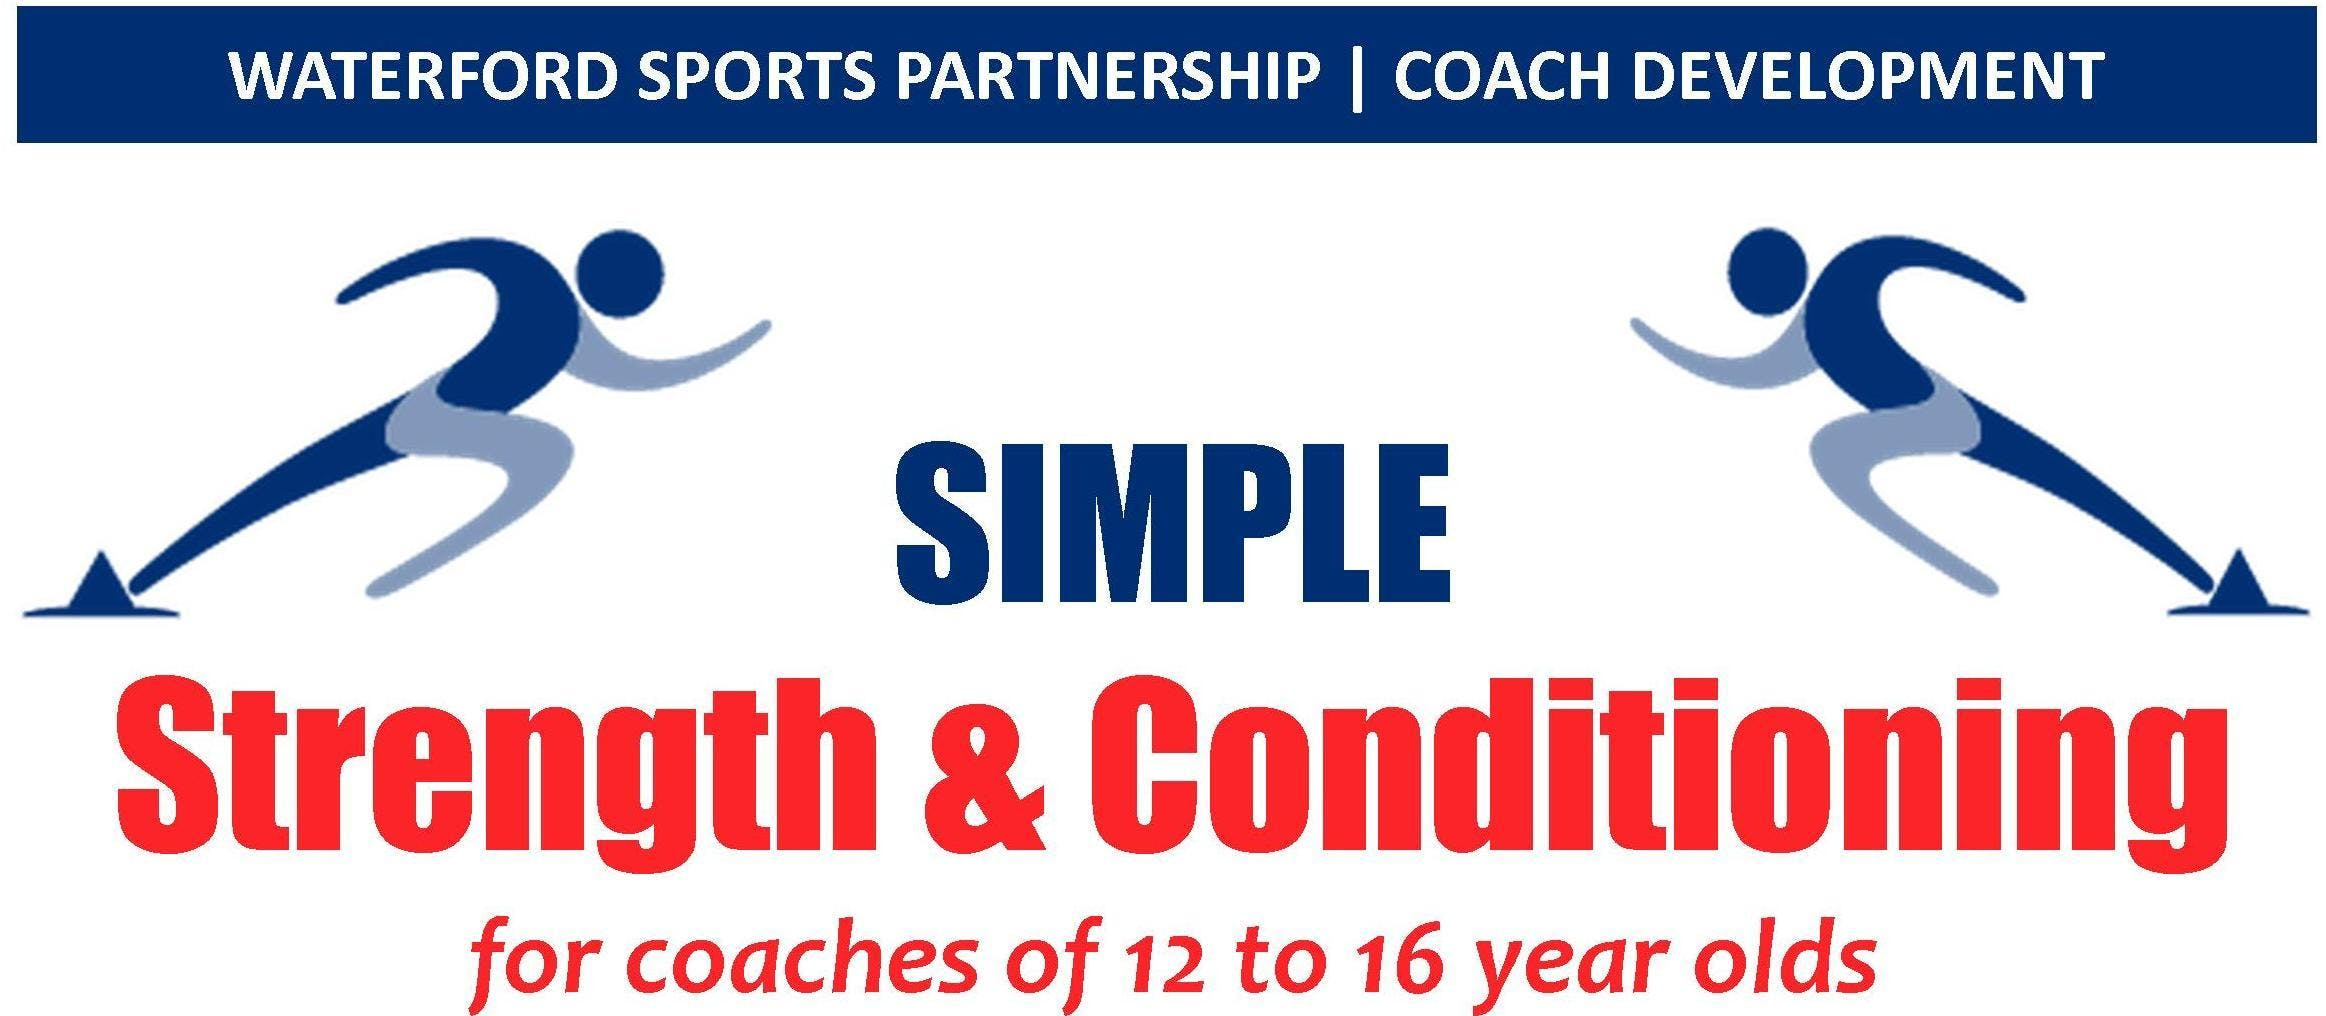 Simple Strength & Conditioning for Coaches of 12 to 16 year olds - Sept 2018